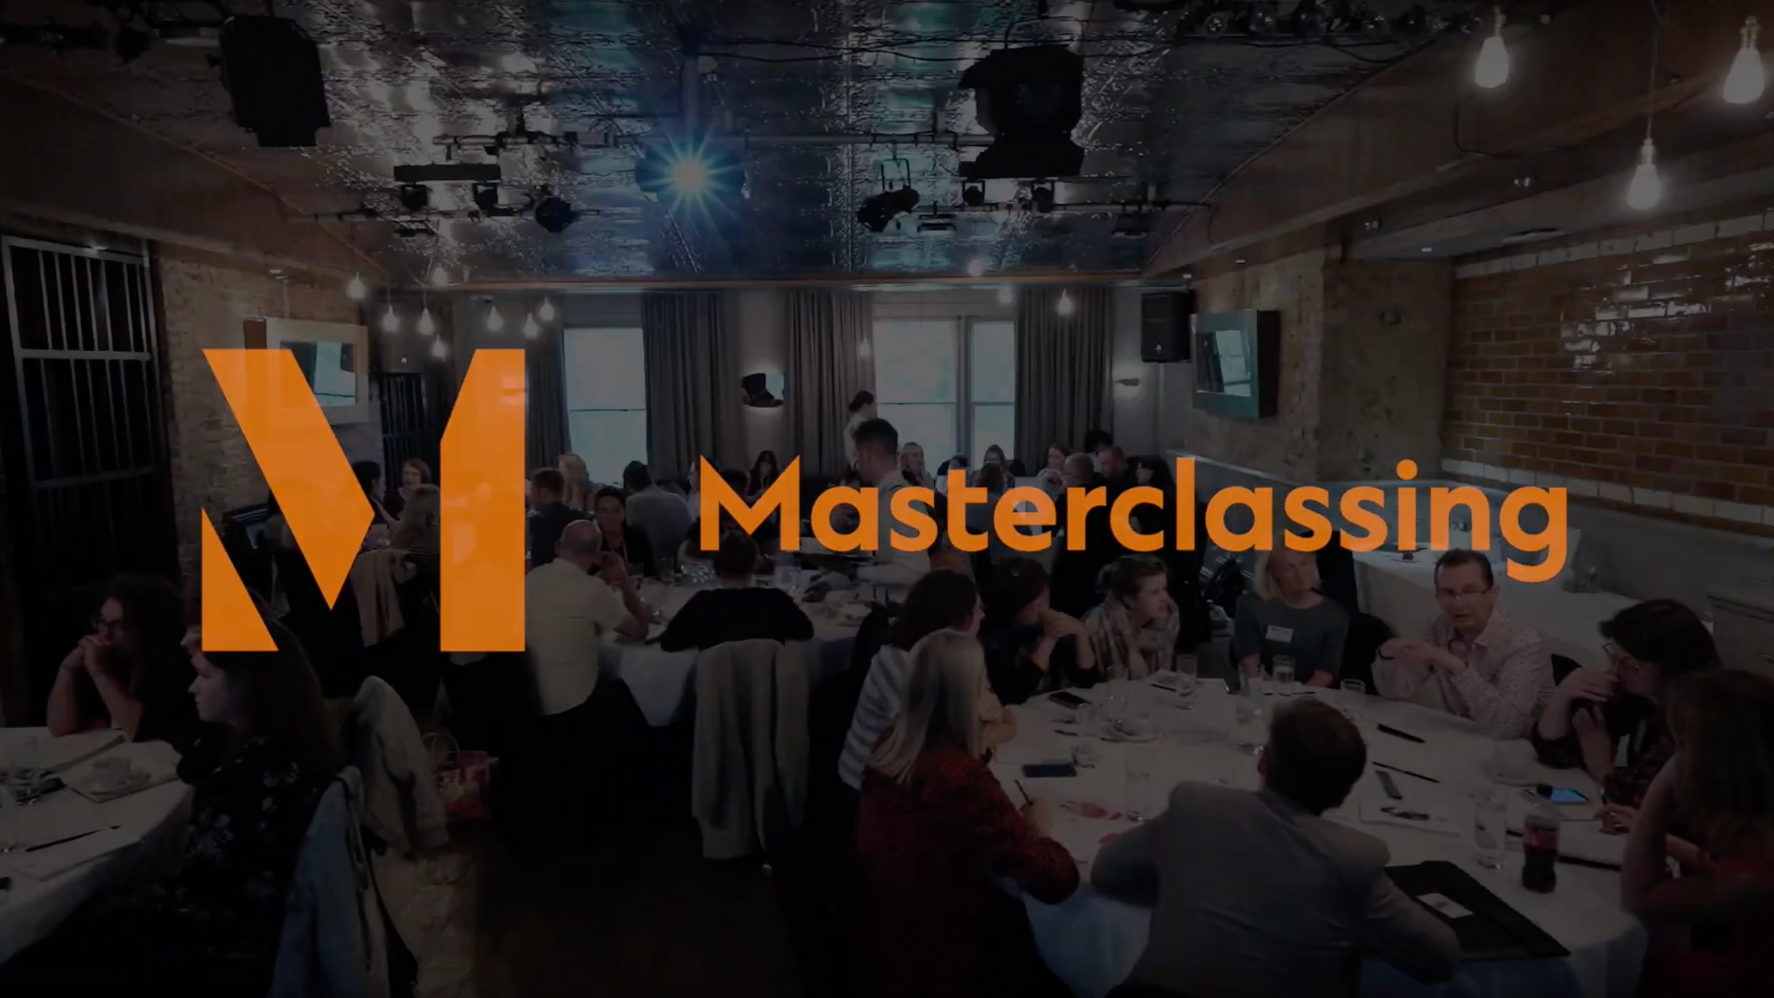 Masterclassing Event Showreel - London